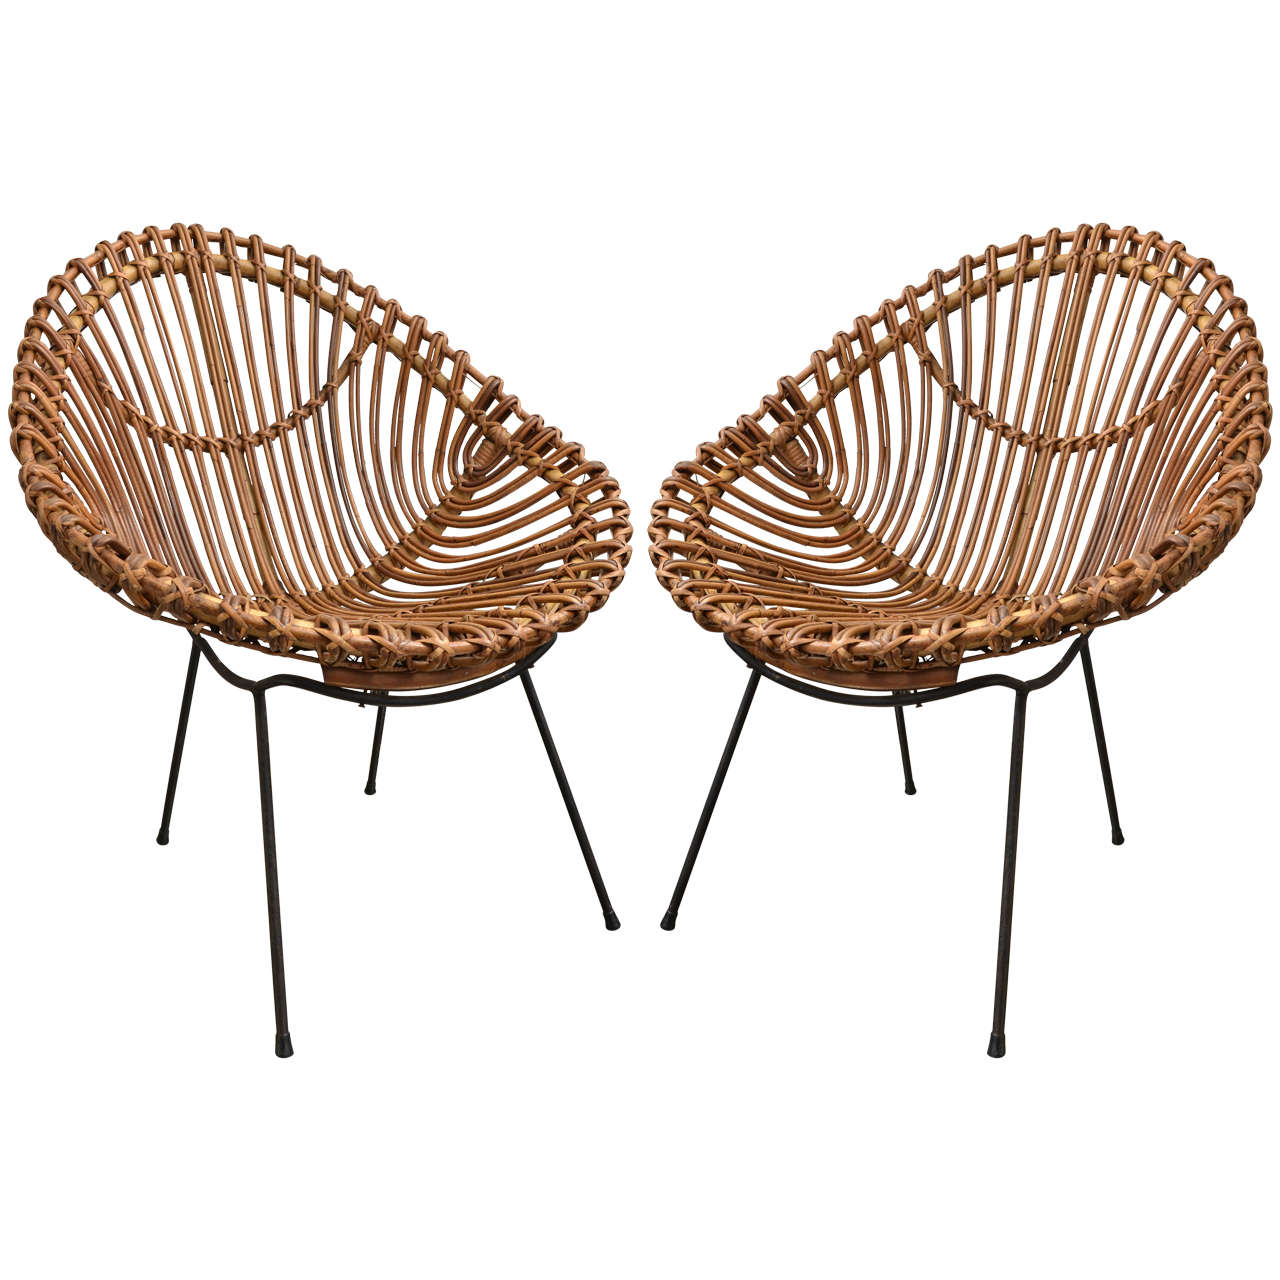 Bamboo Chairs Pair Of Bamboo Chairs In The Style Of Franco Albini